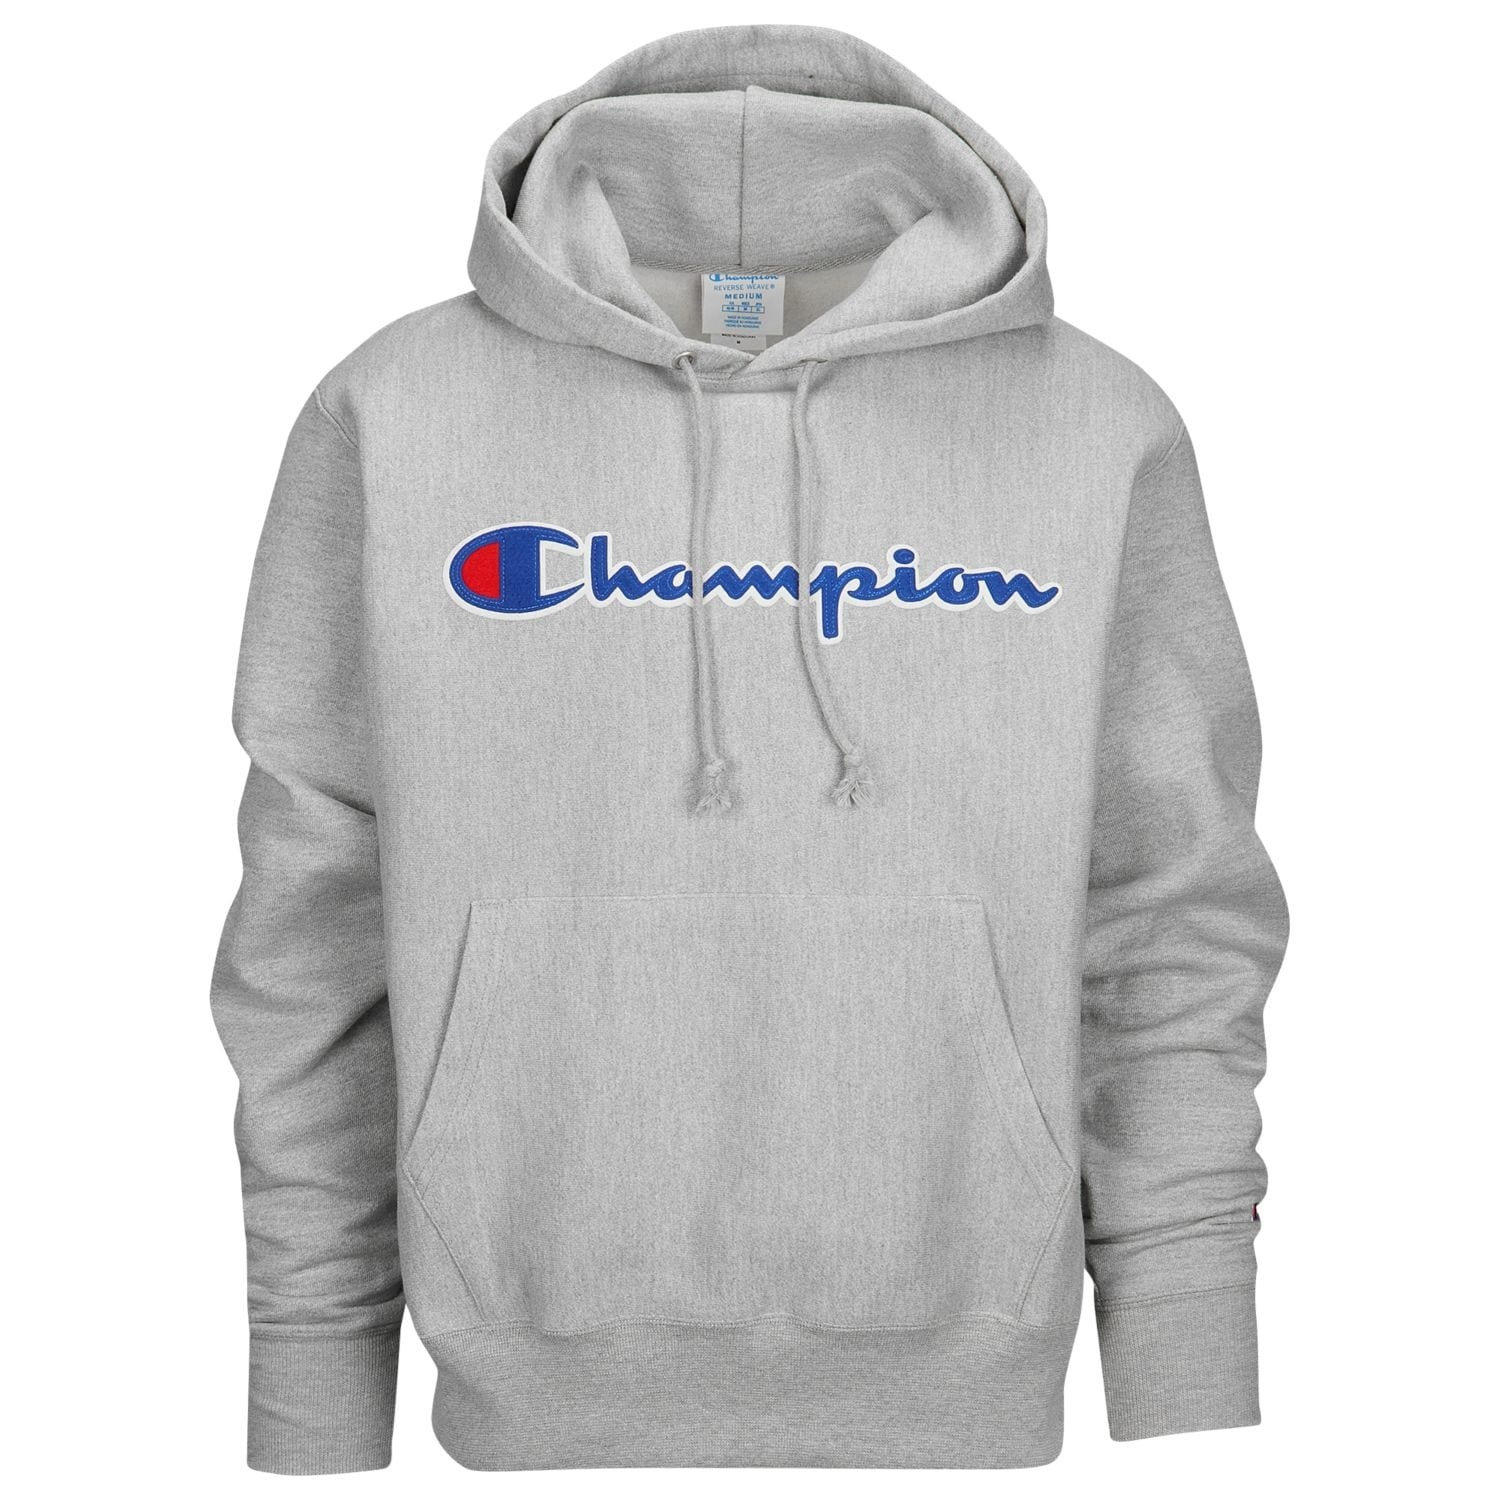 Champion Sweatshirt Walmart Ficts